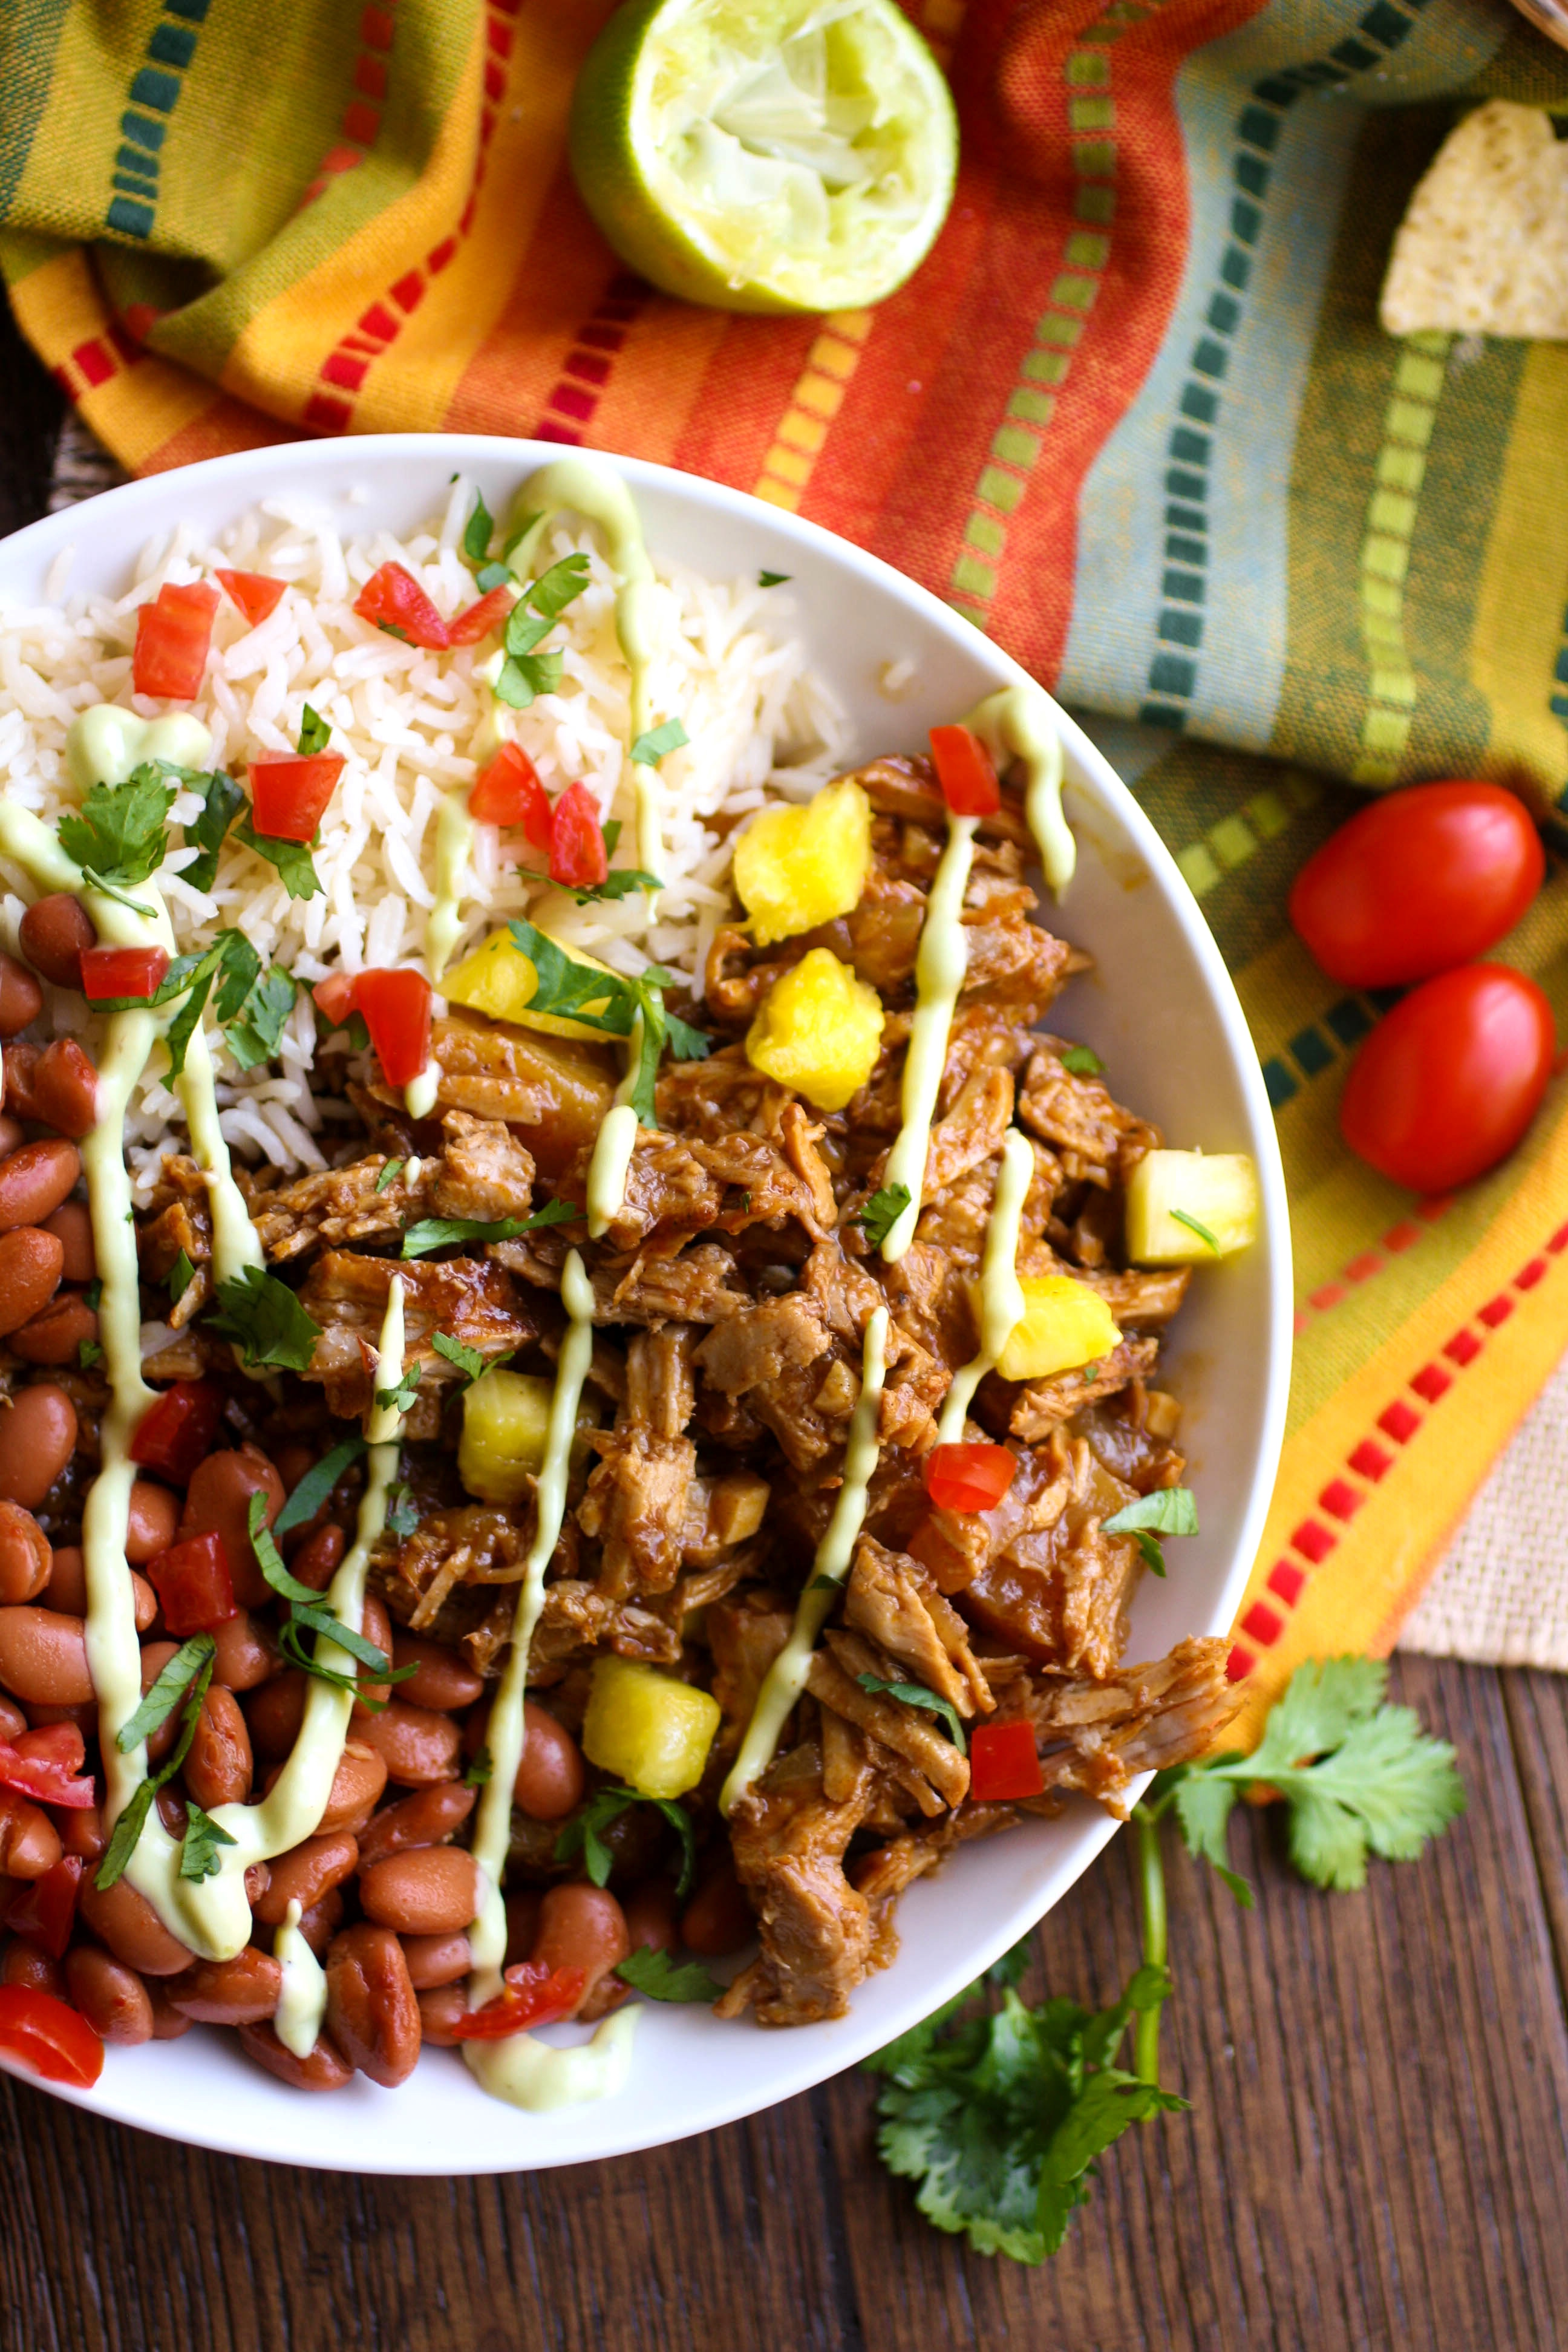 Pork al pastor bowls are amazingly delicious! You'll find rice, beans, and even pineapple in this dish.